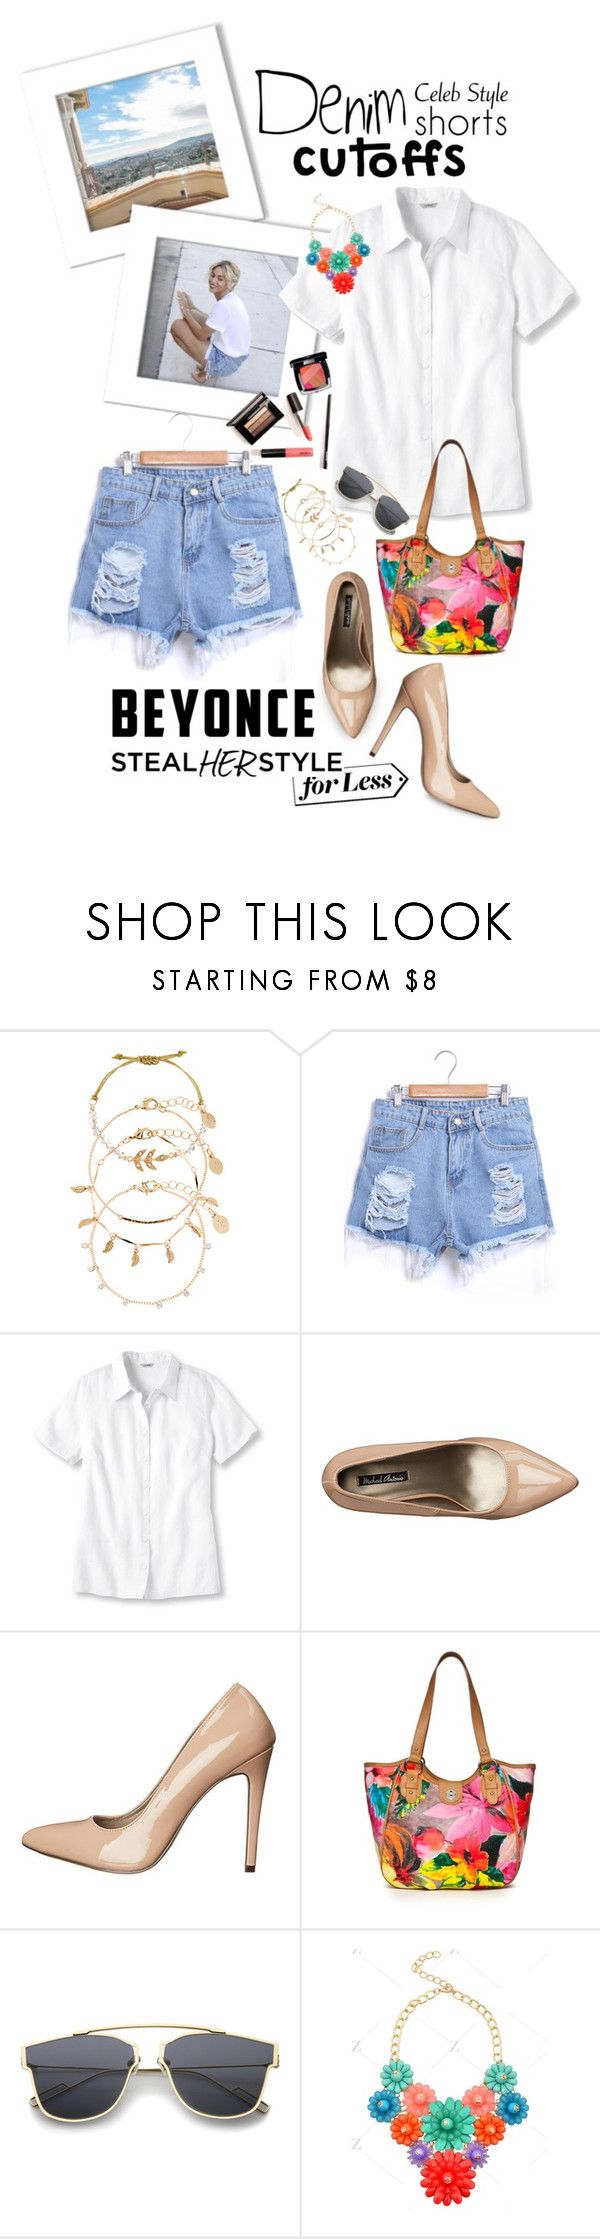 """""""The Final Cut: Denim Shorts"""" by shortyluv718 ❤ liked on Polyvore featuring Accessorize, L.L.Bean, Michael Antonio, Rosetti, Chanel, Beyonce, jeanshorts, cutoffs and contestentry"""